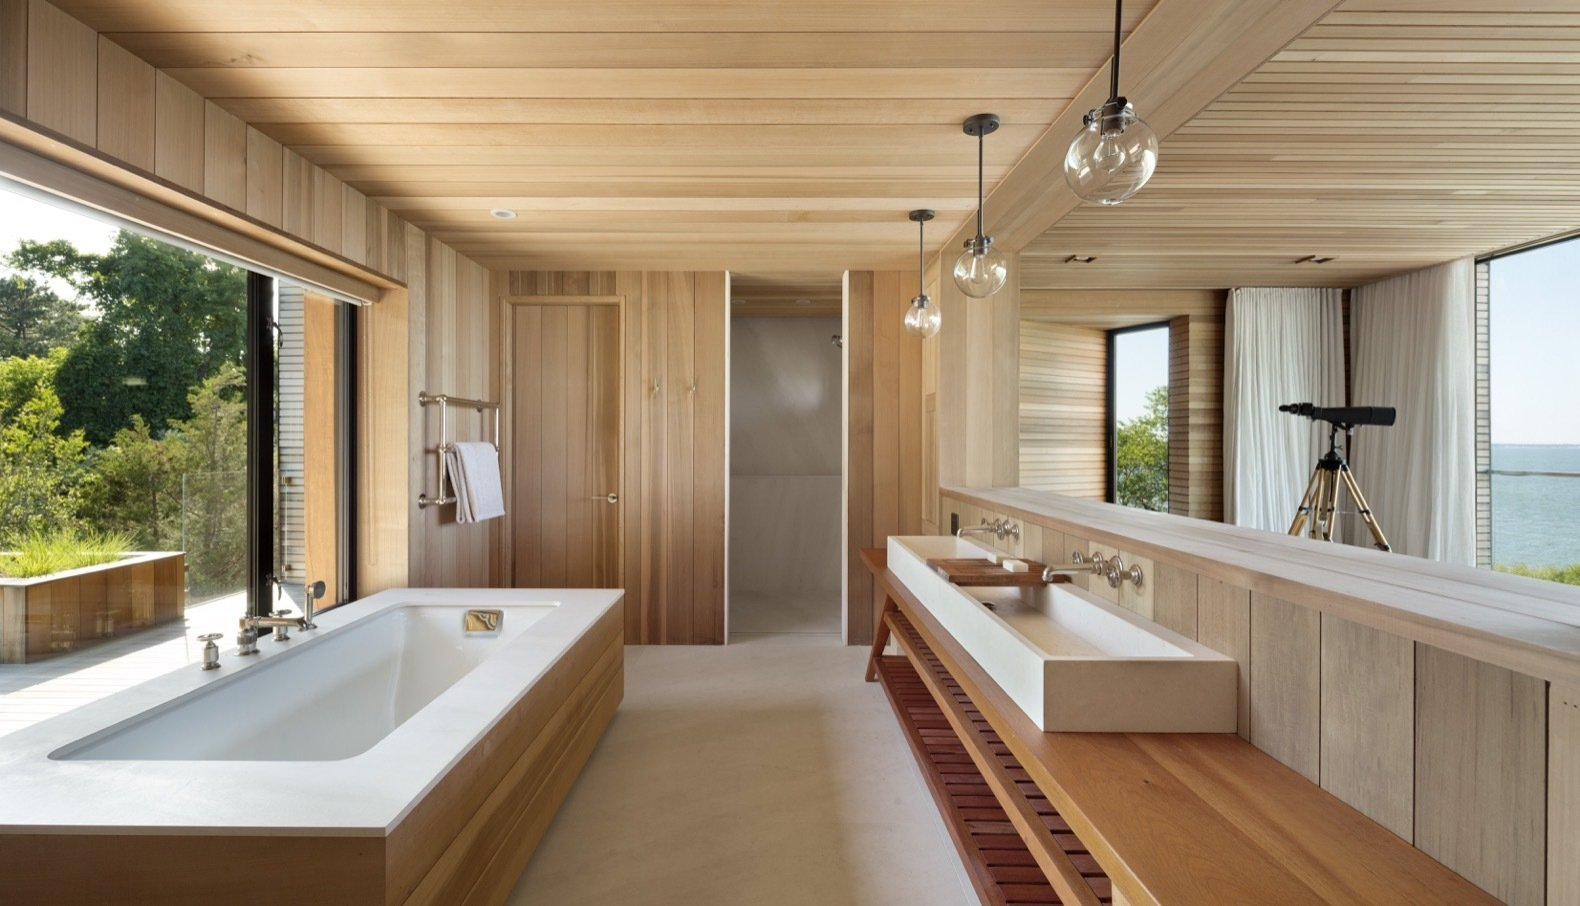 Bath, Soaking, Vessel, Enclosed, Pendant, and Wood The bathroom fixtures include Waterworks, Duravit, Kohler, and Geberit.  Best Bath Soaking Pendant Wood Photos from This Hamptons Getaway Blends Seamlessly Into a Lush Landscape